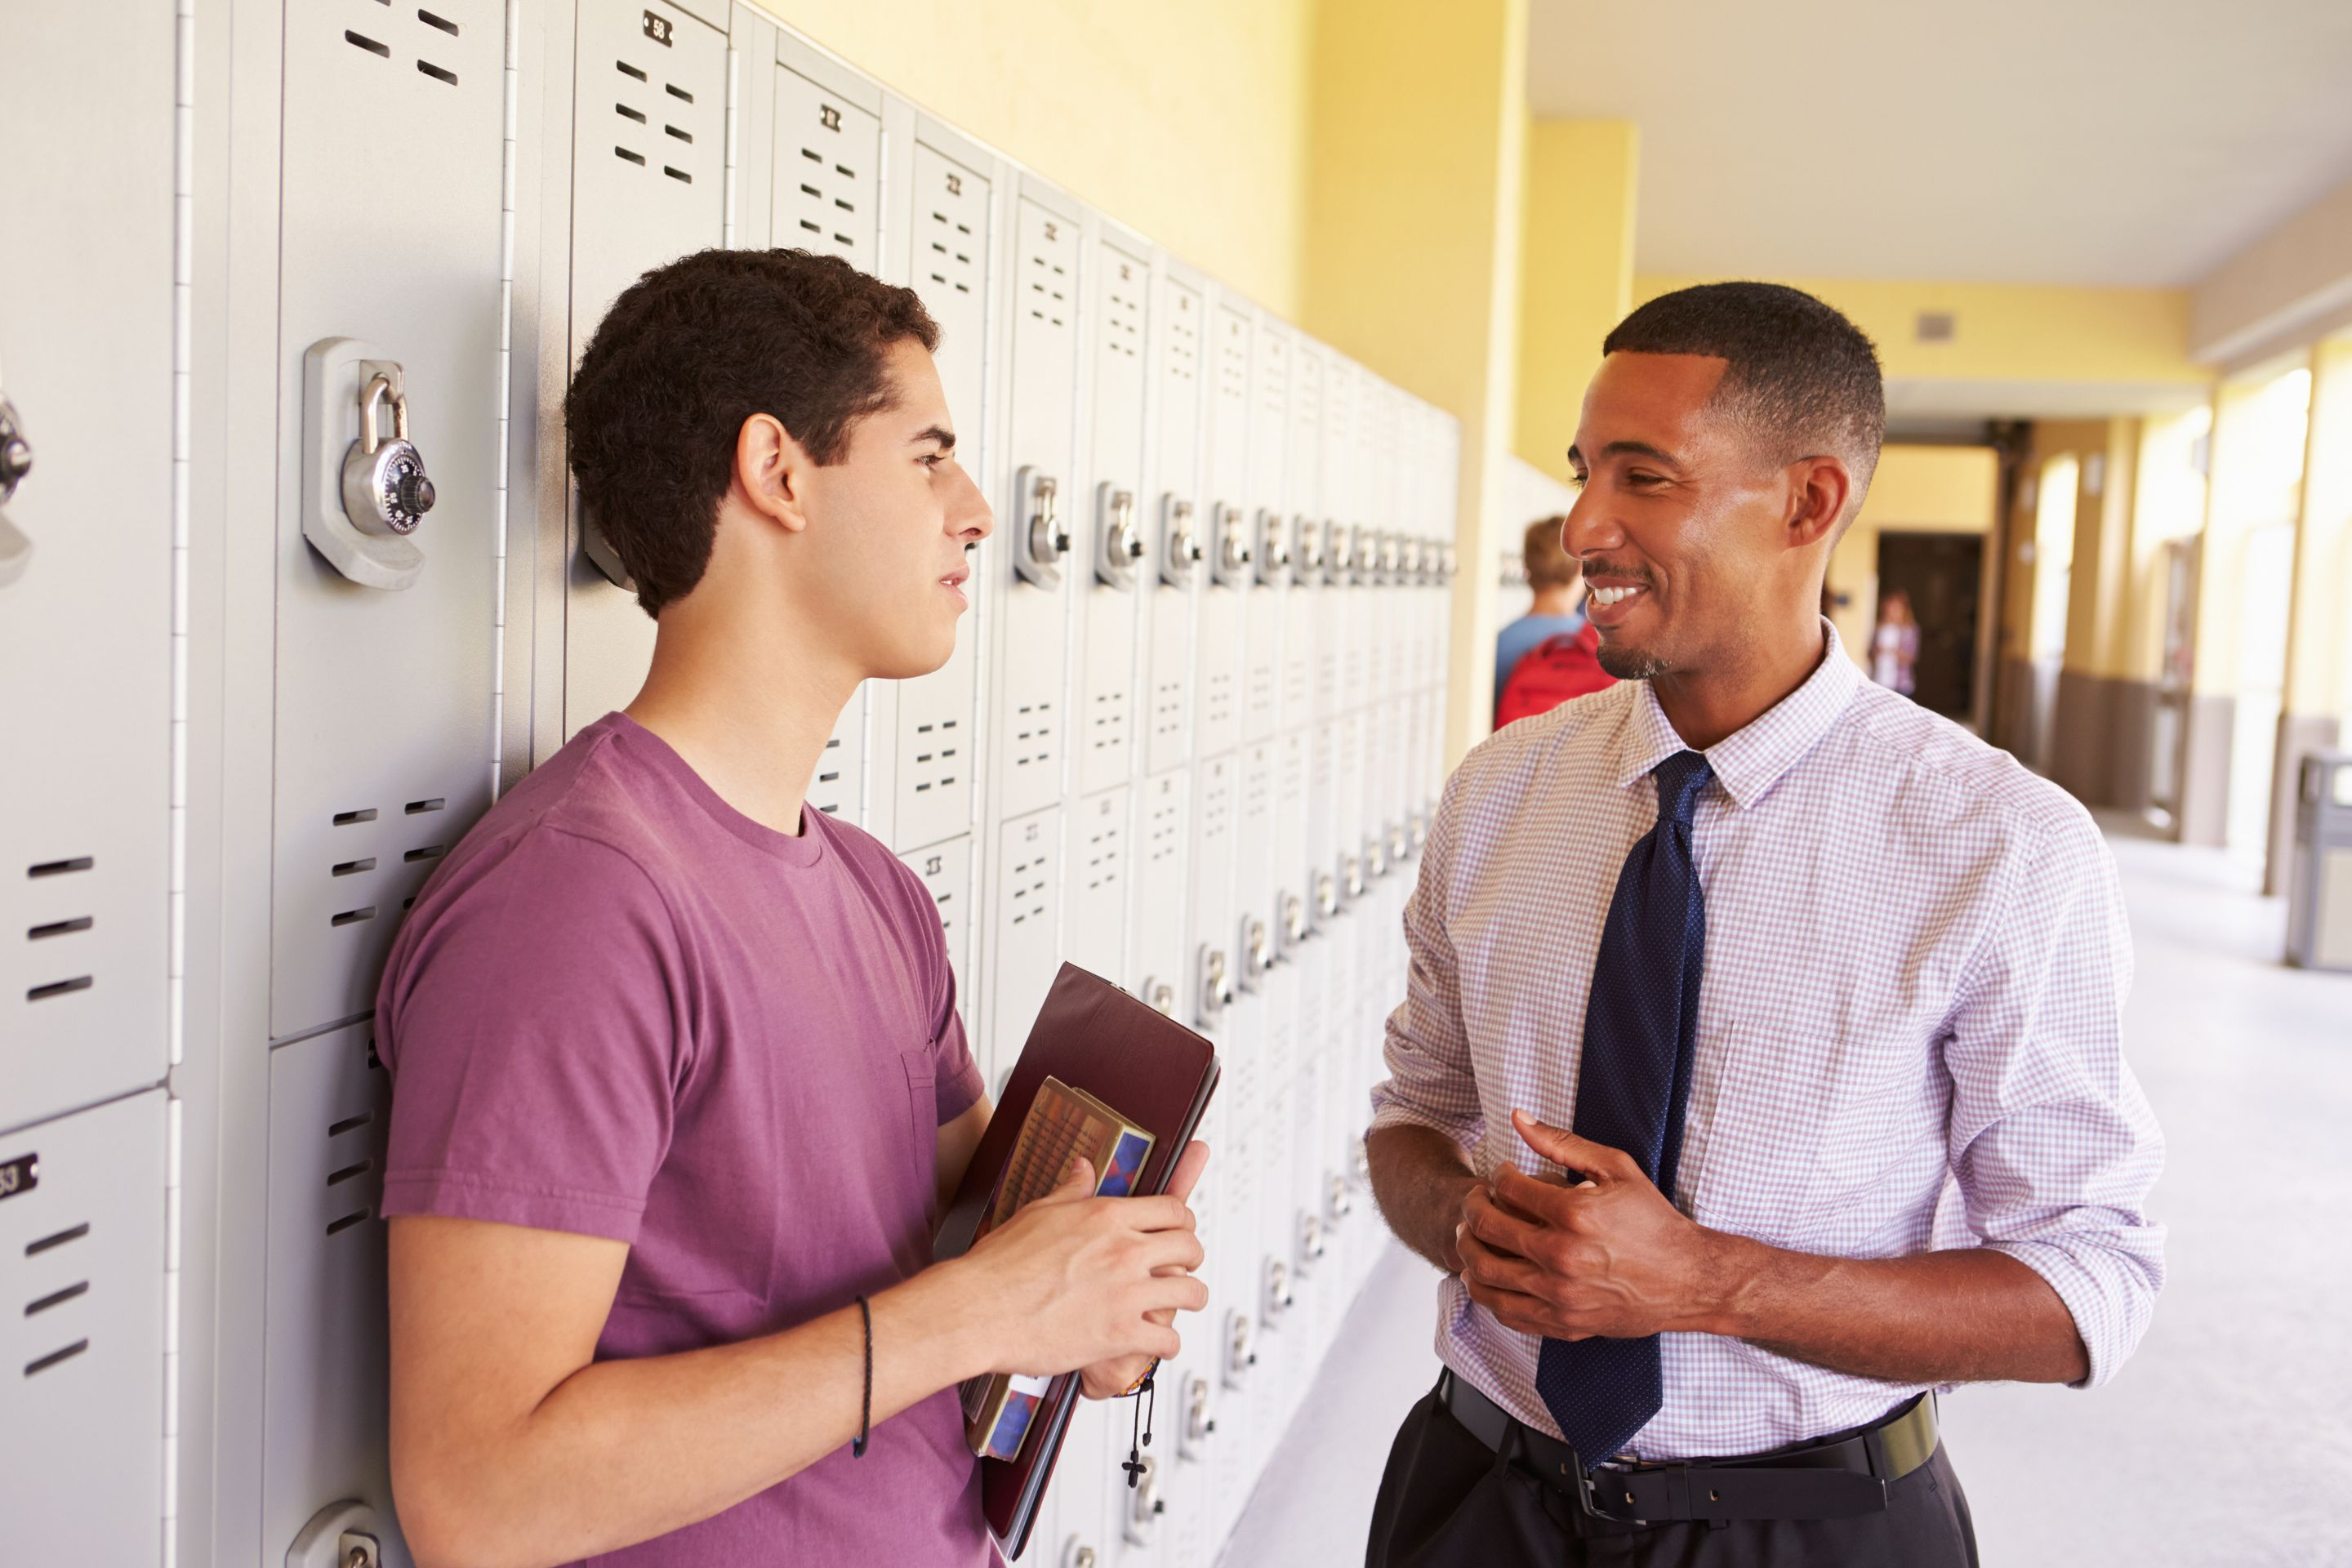 High school teacher talks to a student in the hallway. Both are smiling.